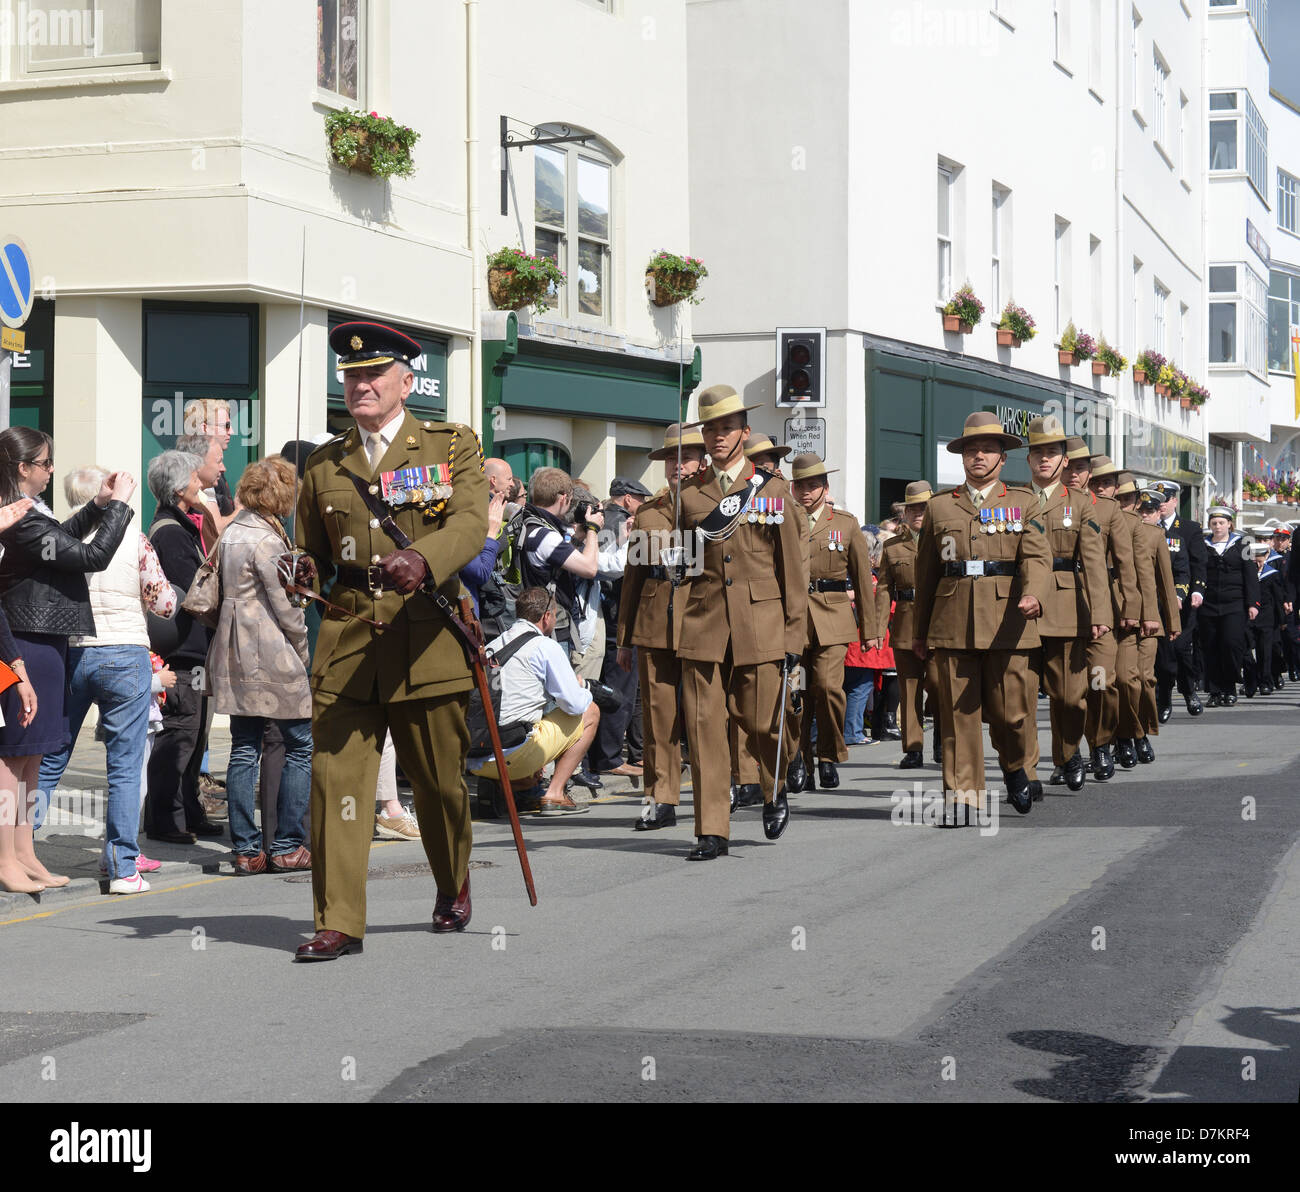 Gurkha troops on parade during Liberation Day celebrations in Guernsey - Stock Image